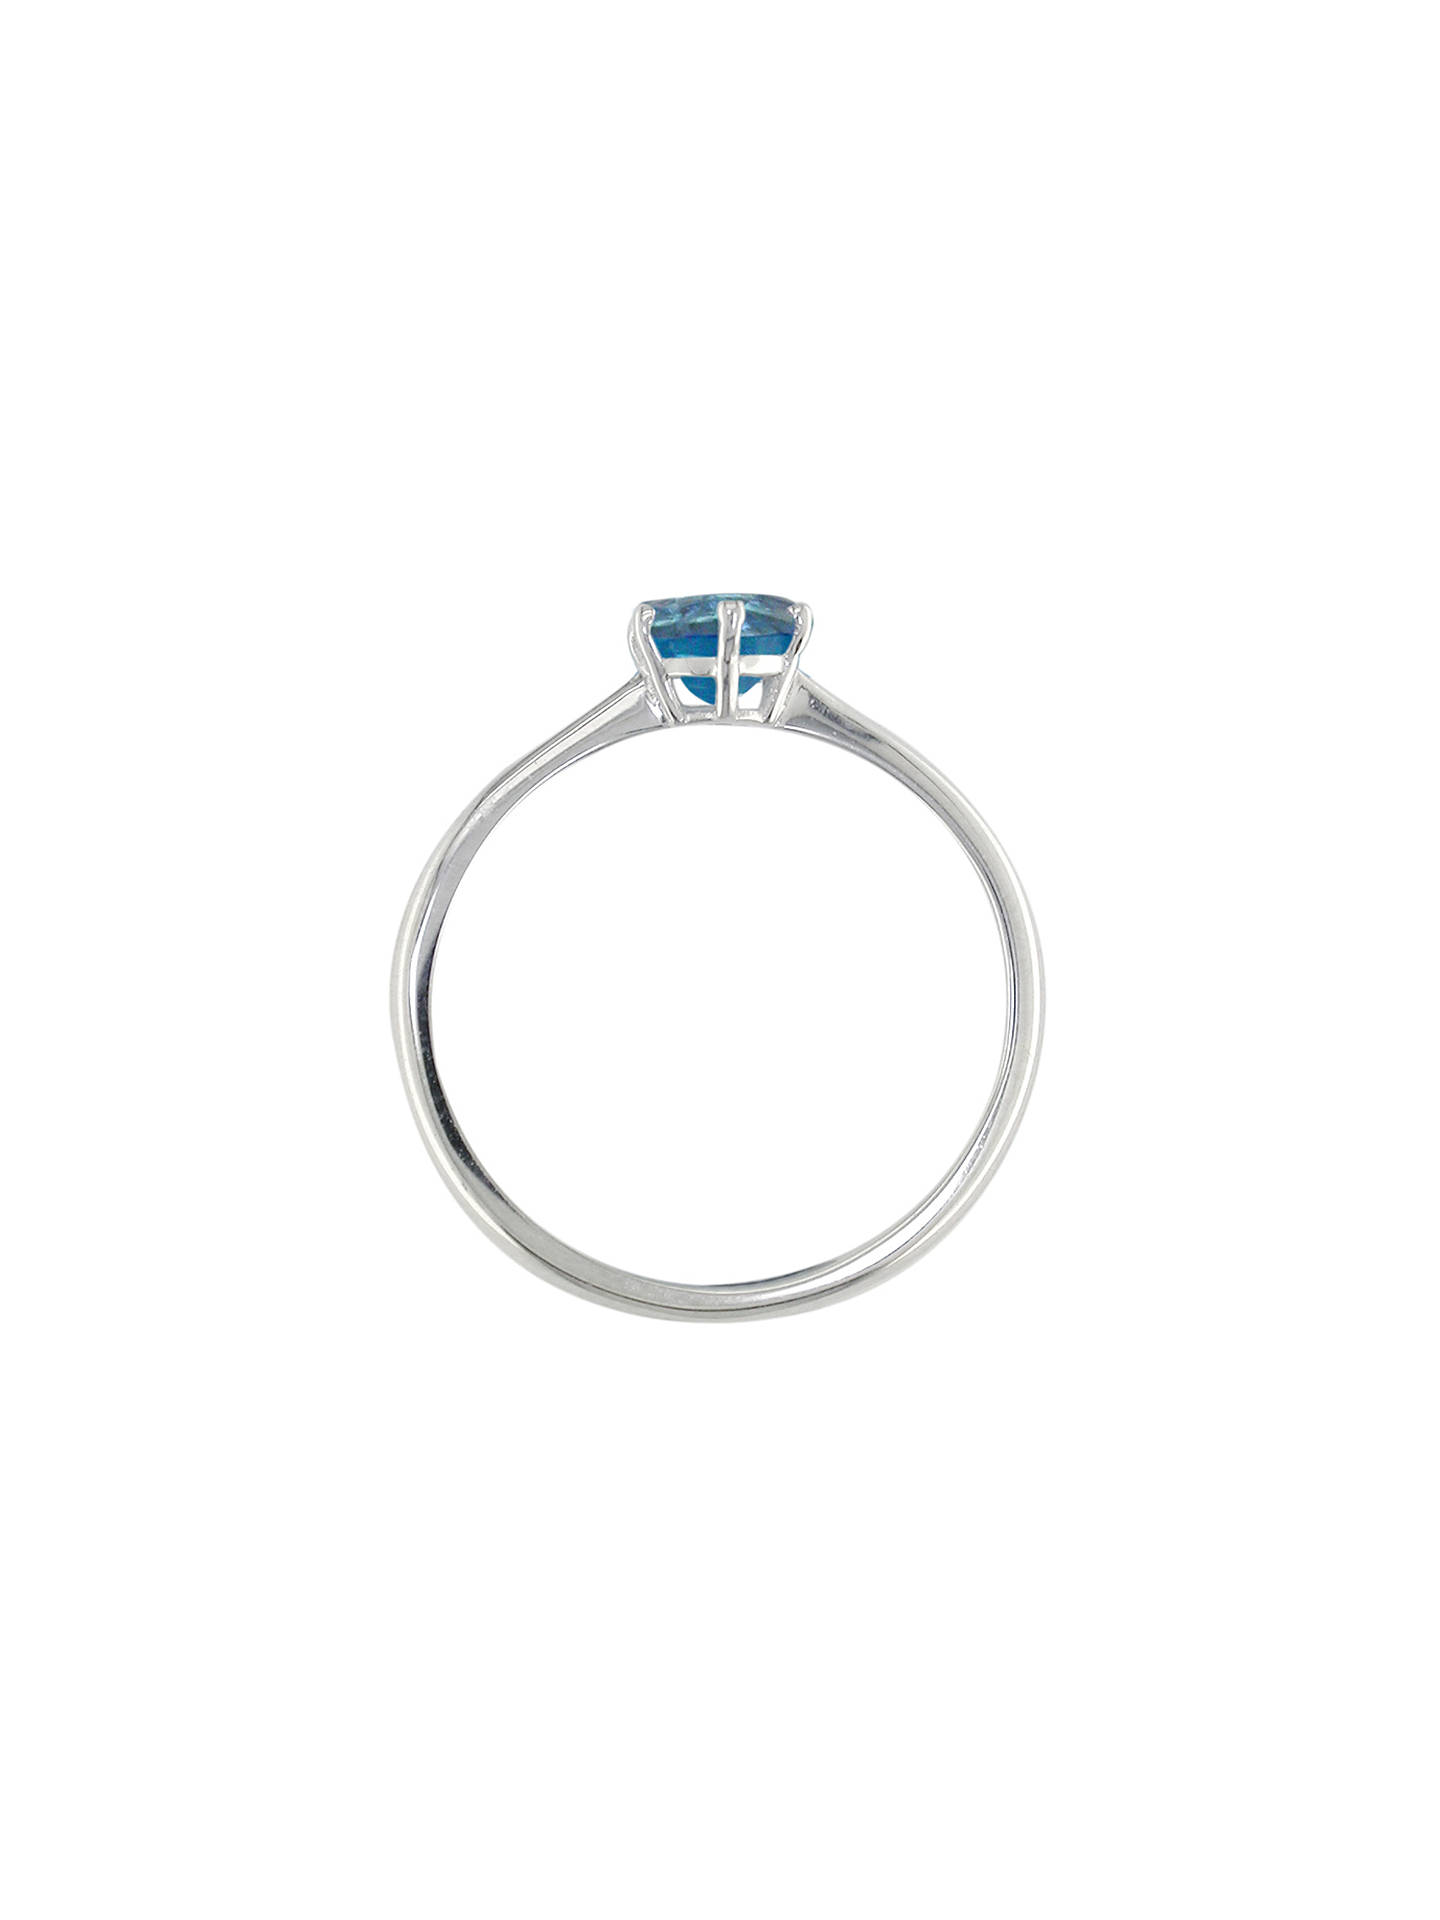 Buy E.W Adams 9ct White Gold Round Semi-Precious Stone Ring, Blue Topaz Online at johnlewis.com